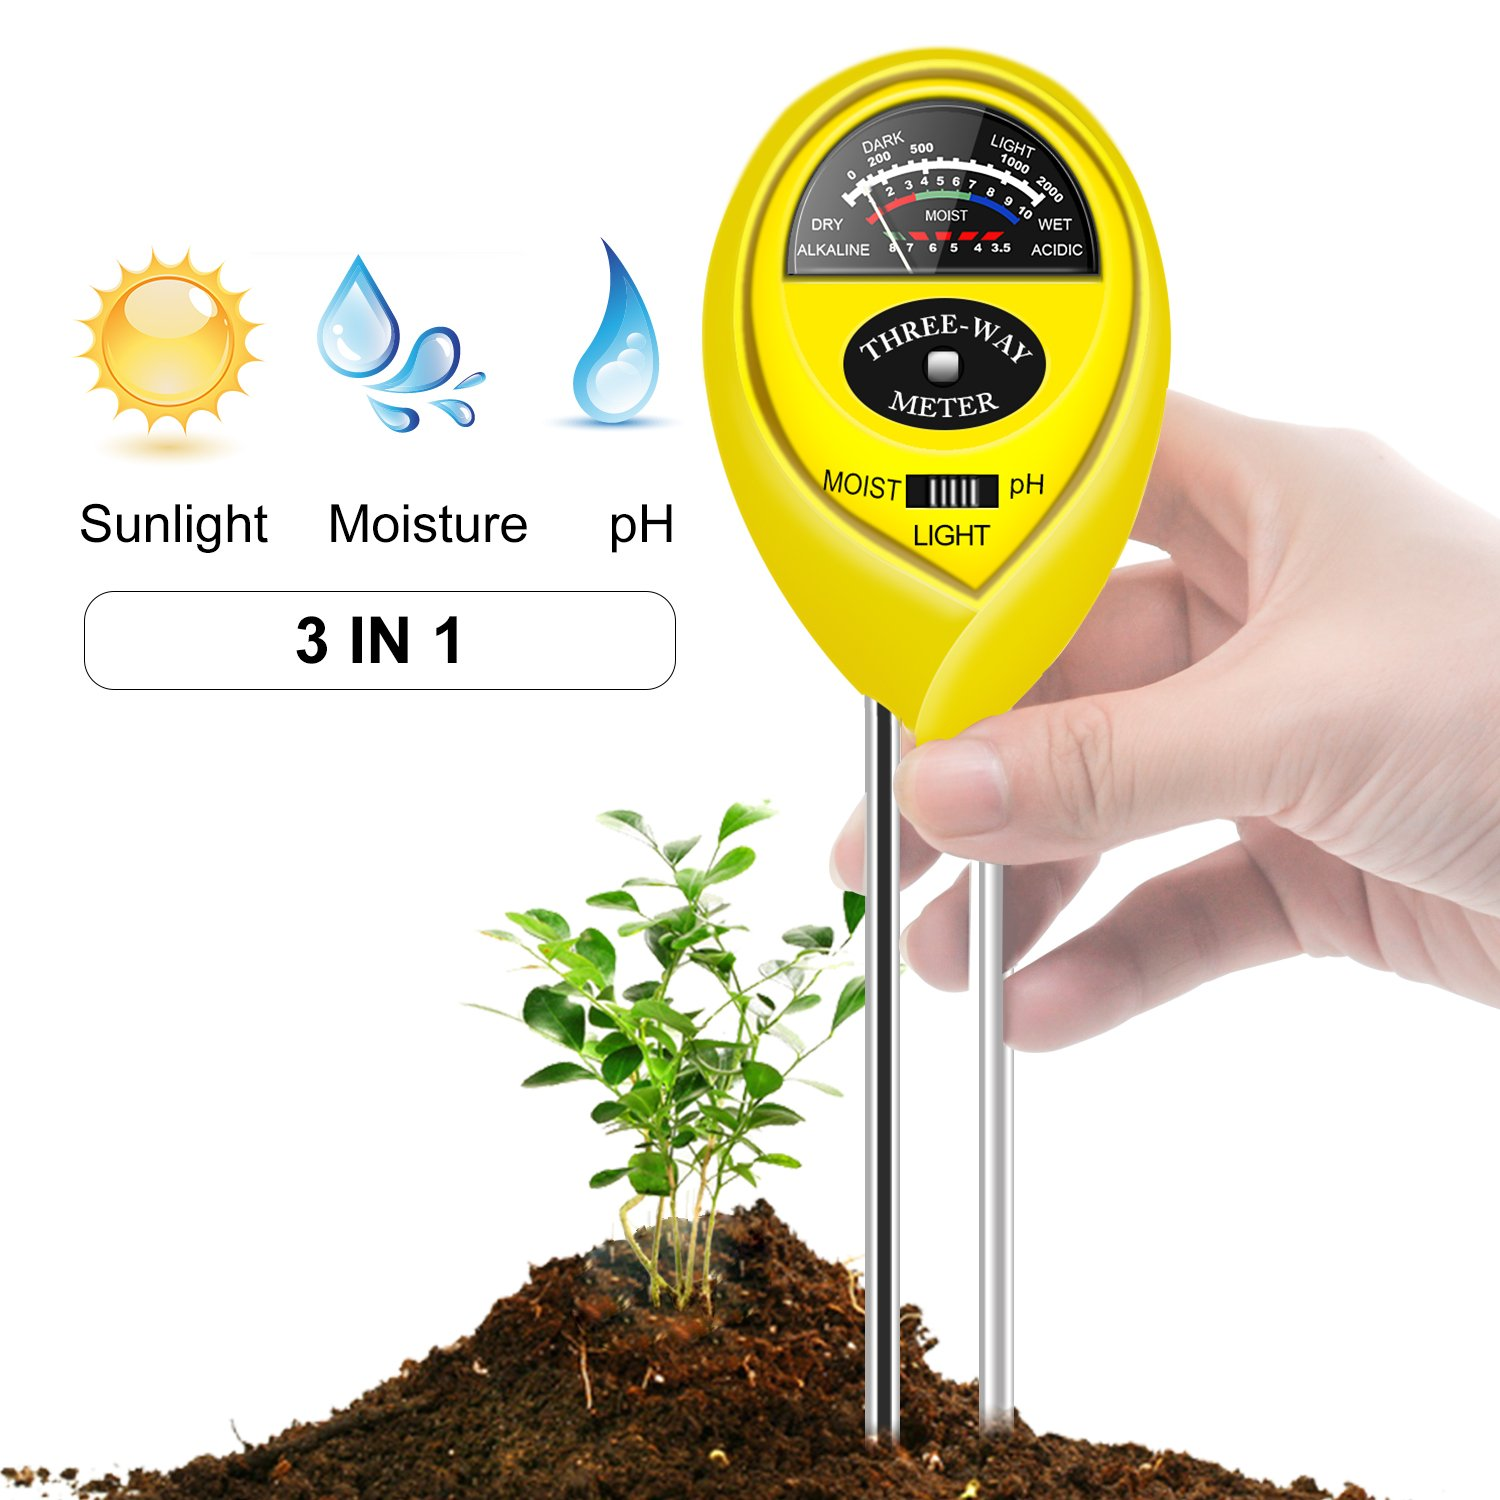 Geekroom Updated Soil pH Meter,3-in-1 Moisture Sensor Meter Acidity/Light/pH Soil Test Kits Gardening Tool Plant Water Monitor Hydrometer for Garden, Farm, Lawn, Indoor & Outdoor Use